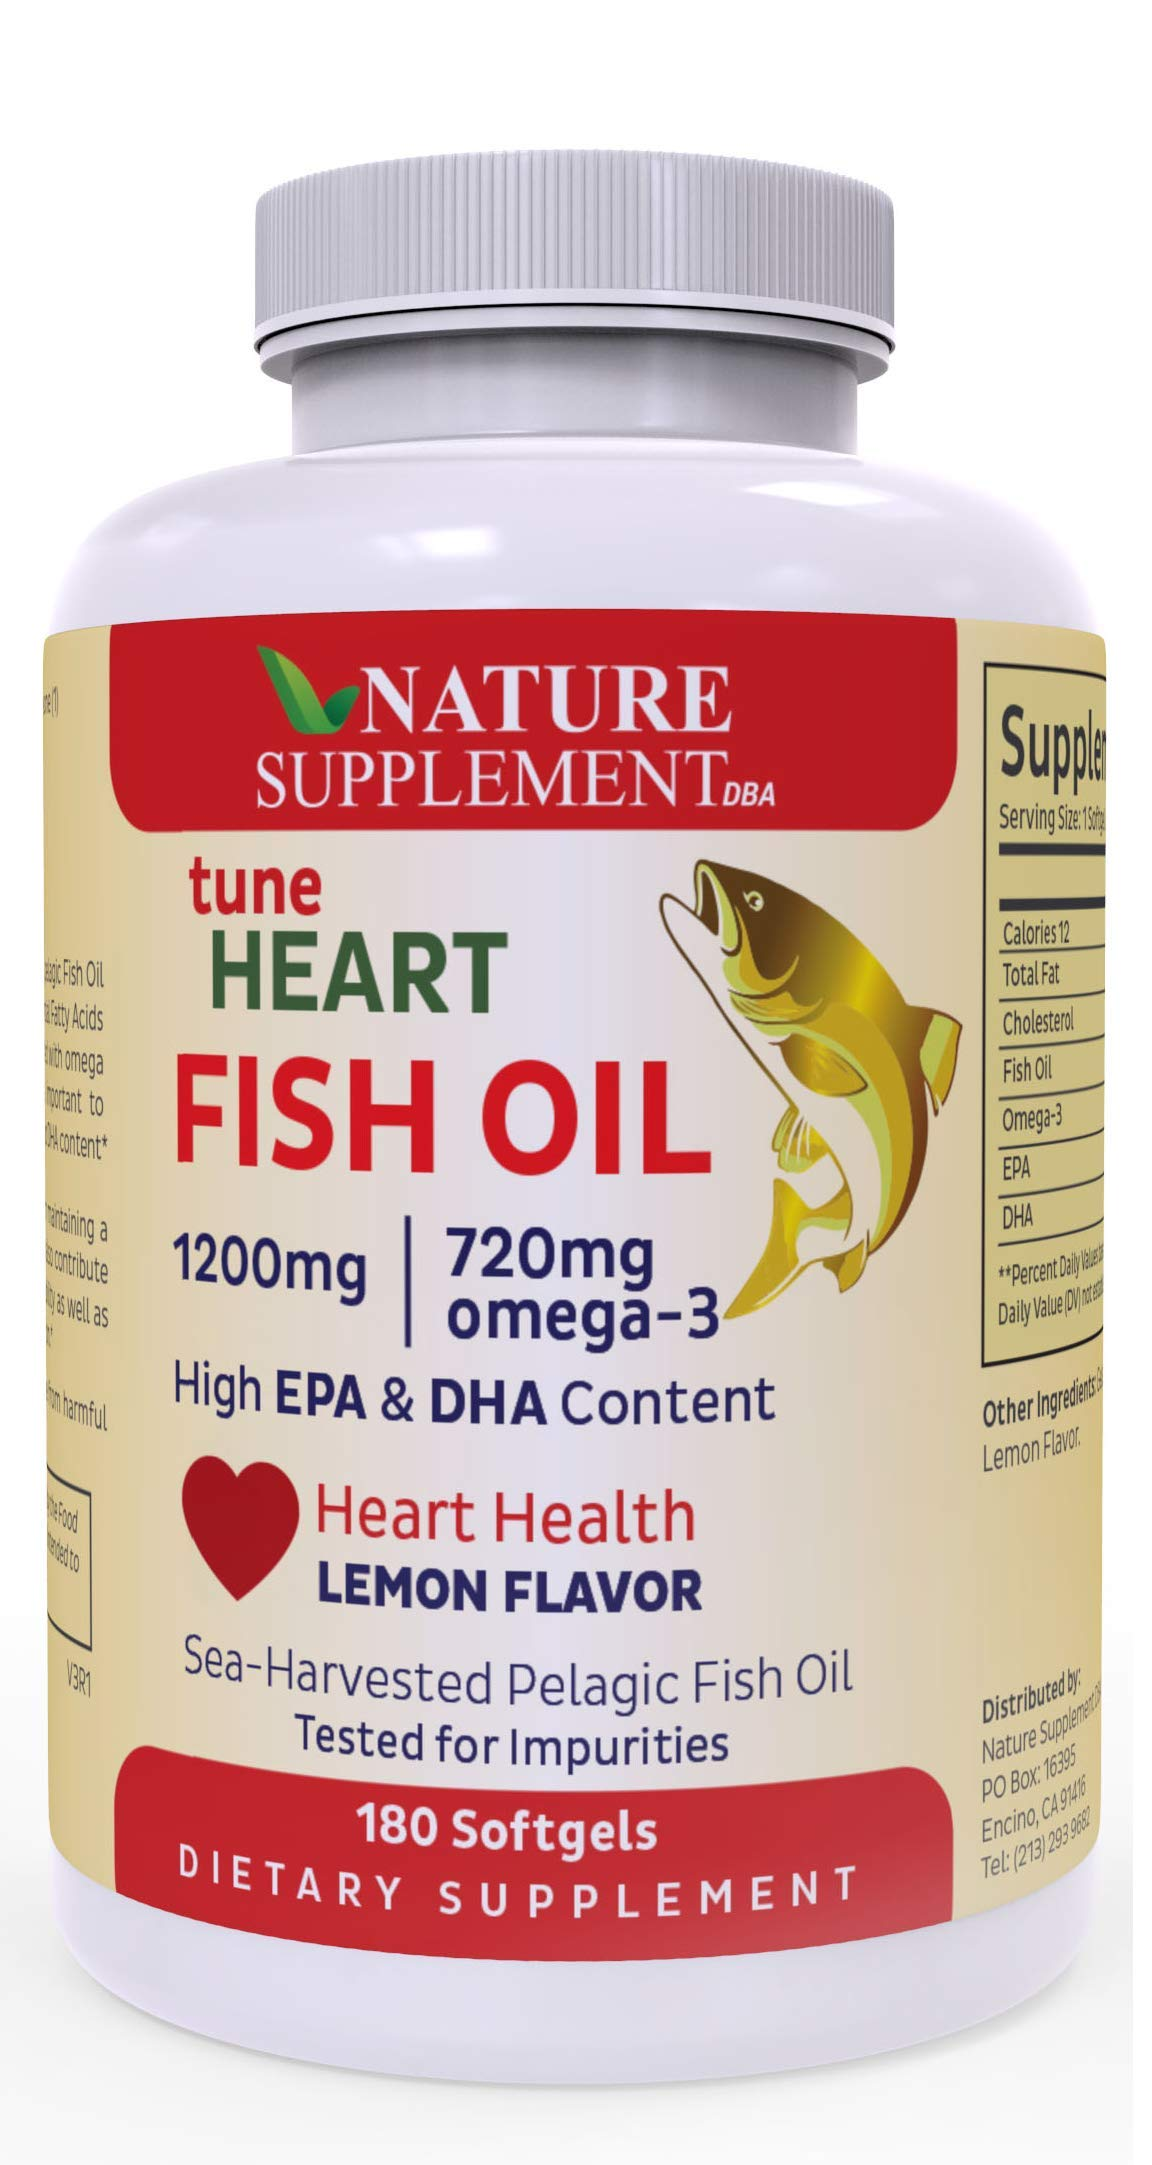 Fish Oil Omega 3 1200mg, 180 Count, Lemon Flavored, GMP-Certified, Supports Heart Health by tuneHEART